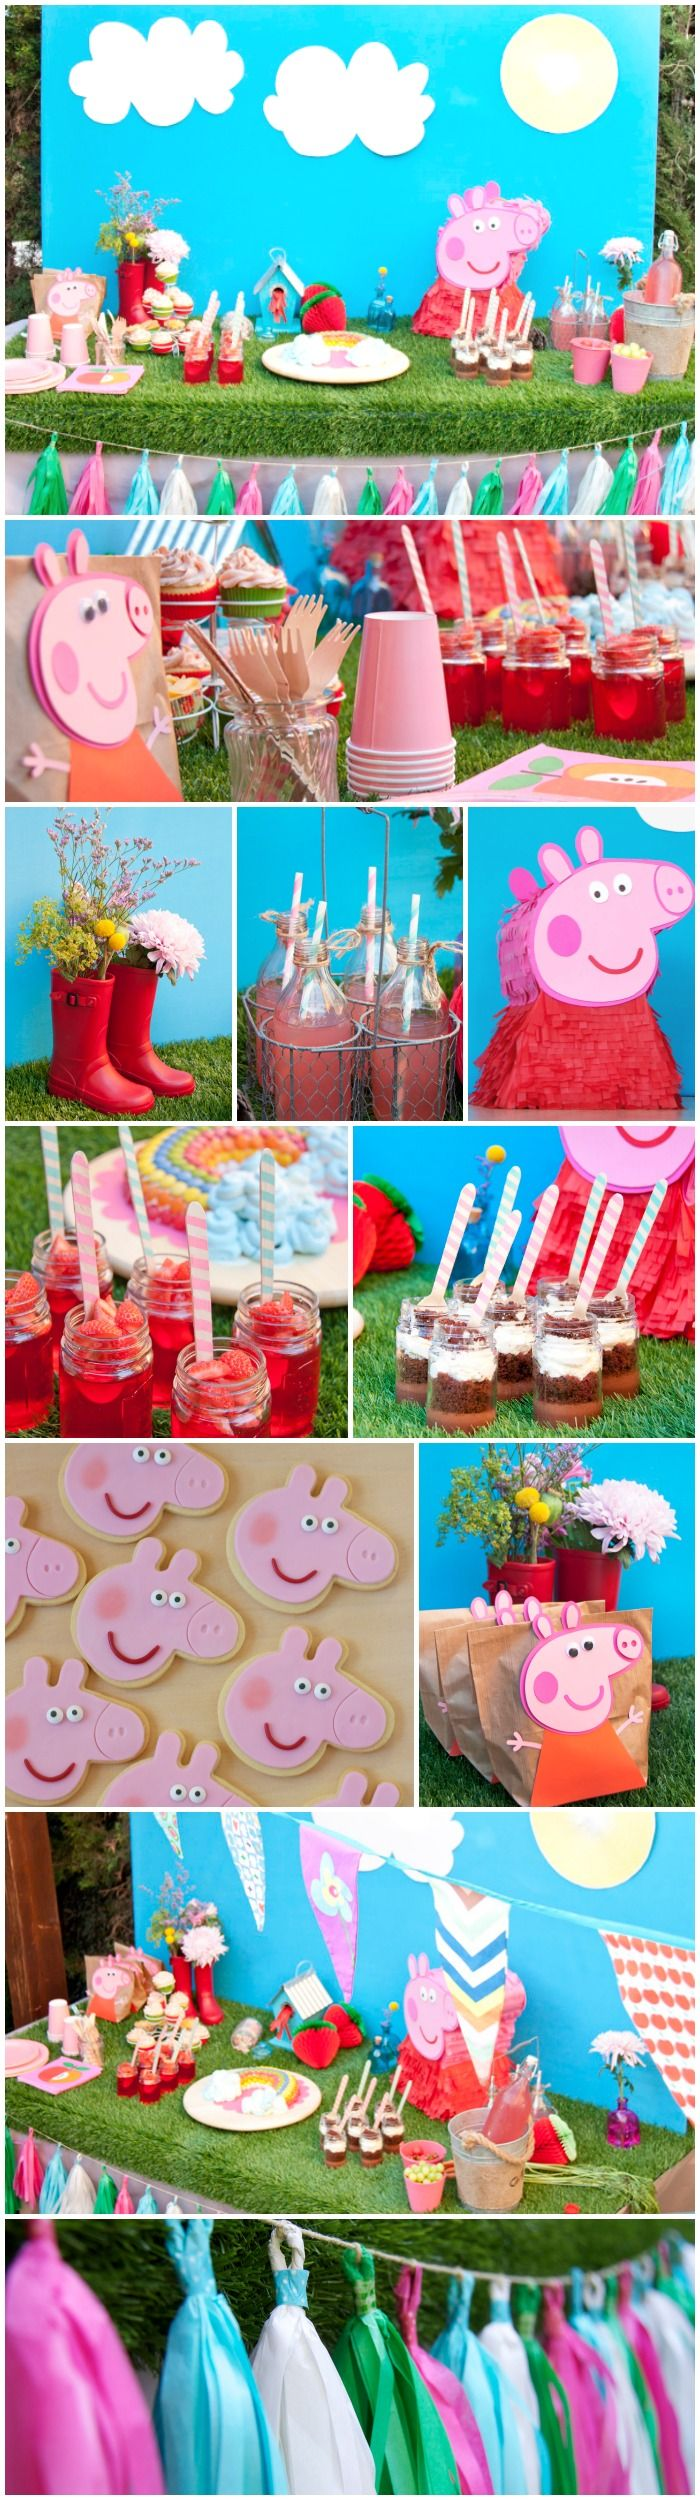 Peppa Pig Party Fiesta Peppa Pig Www Azucarillosdecolores